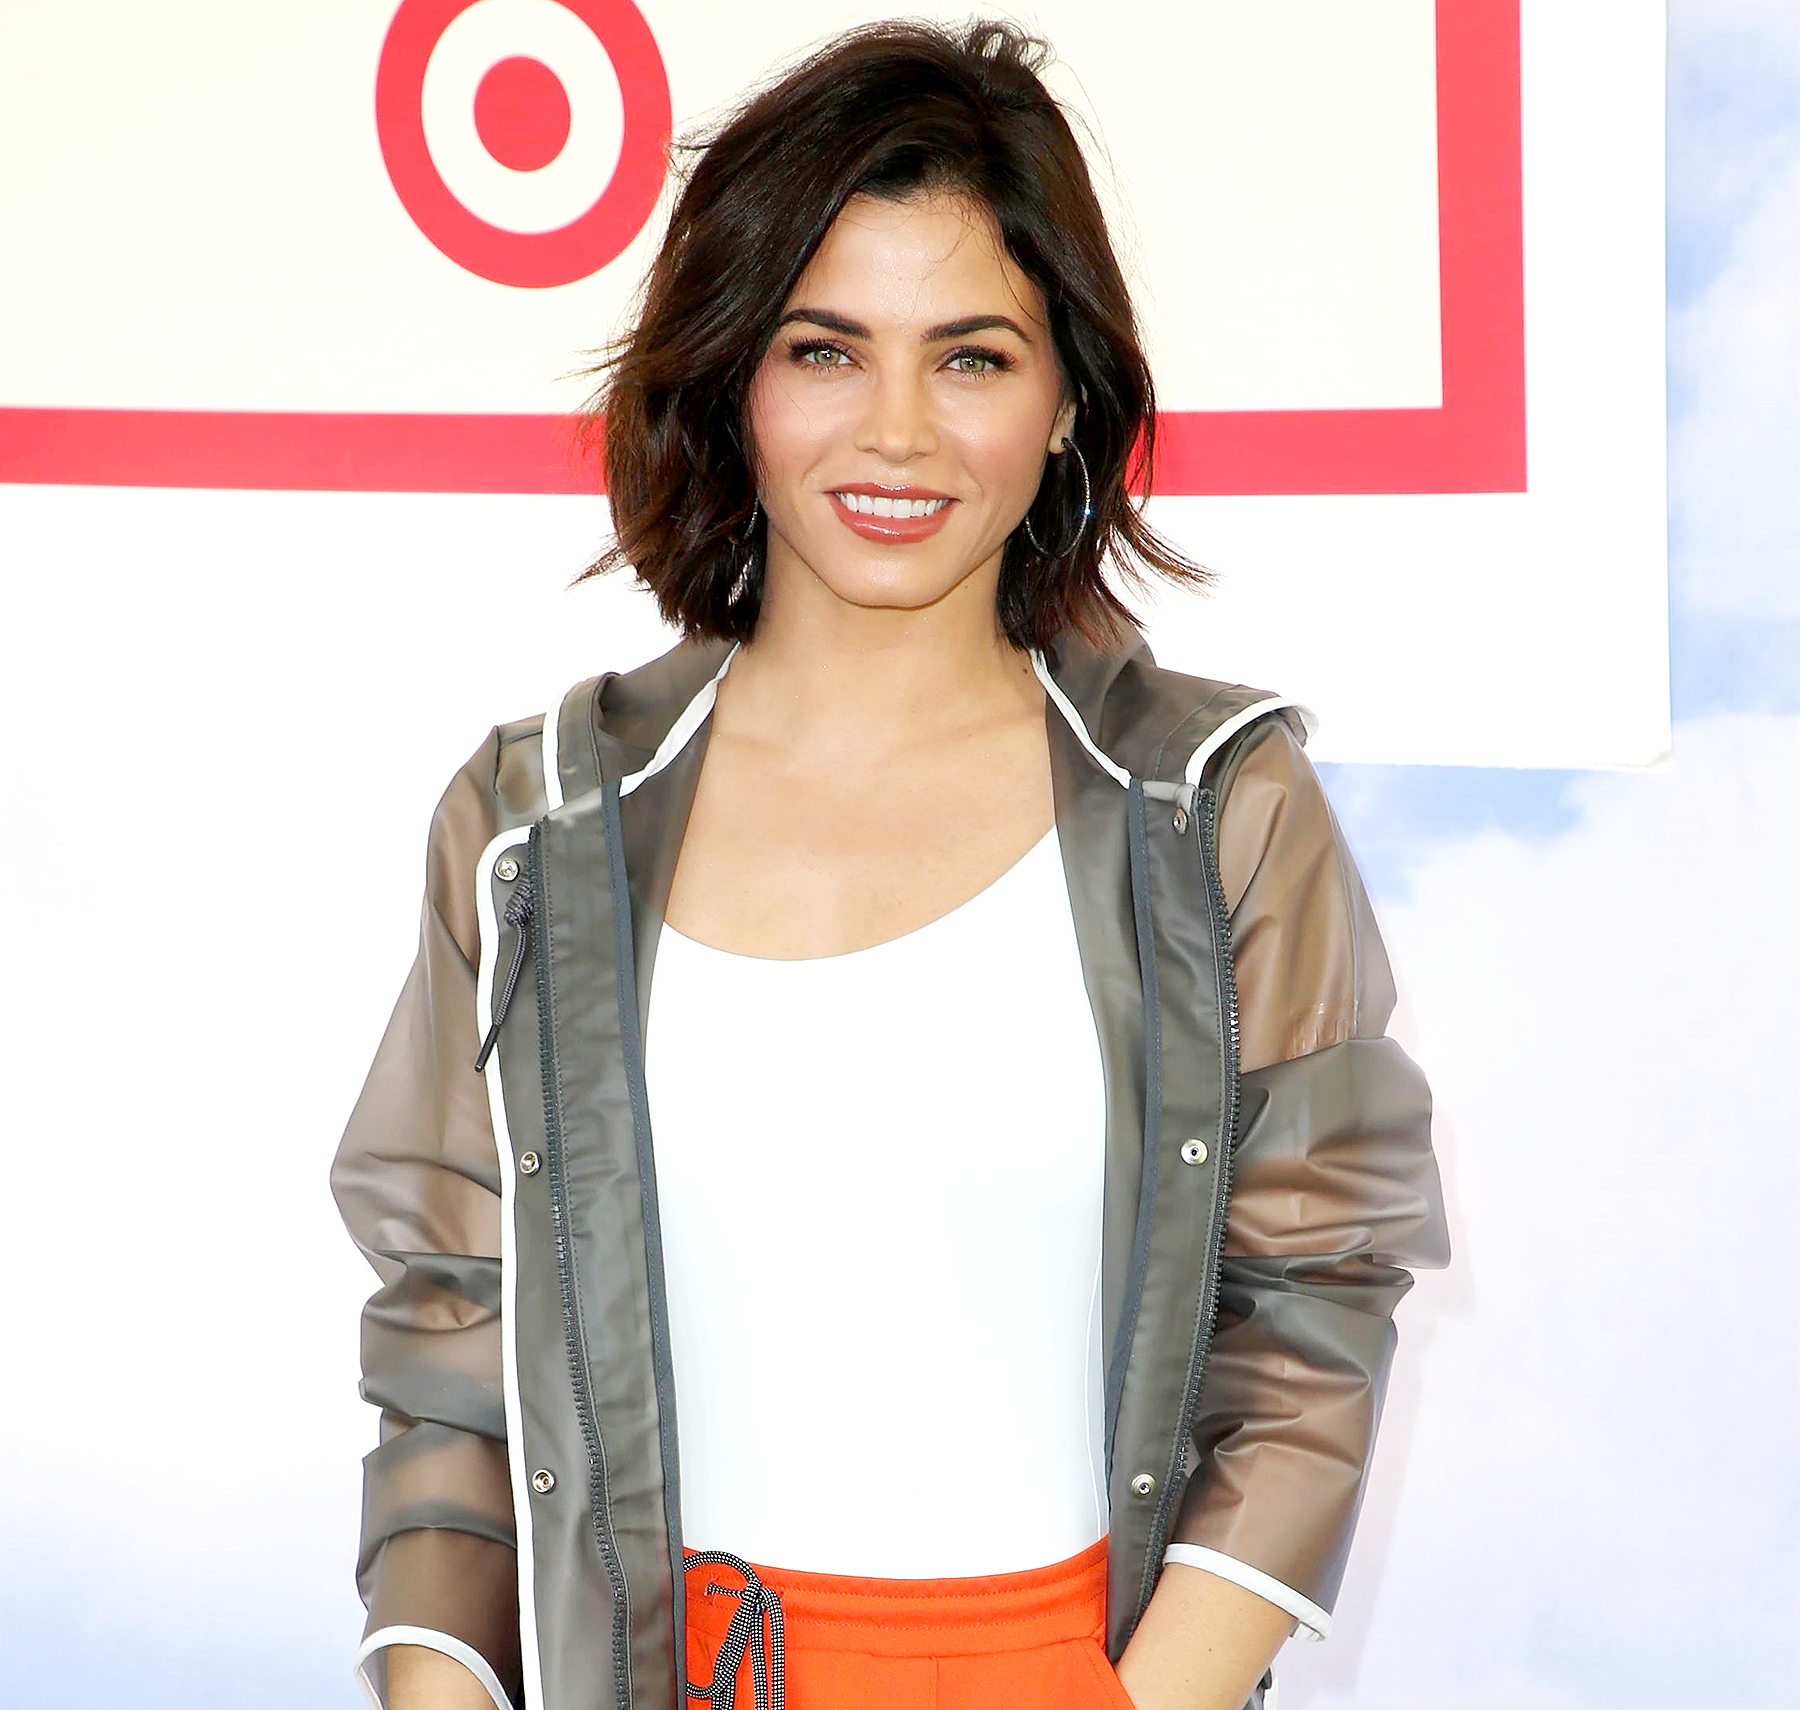 Jenna Dewan Makes First Public Appearance Since Channing Tatum Split